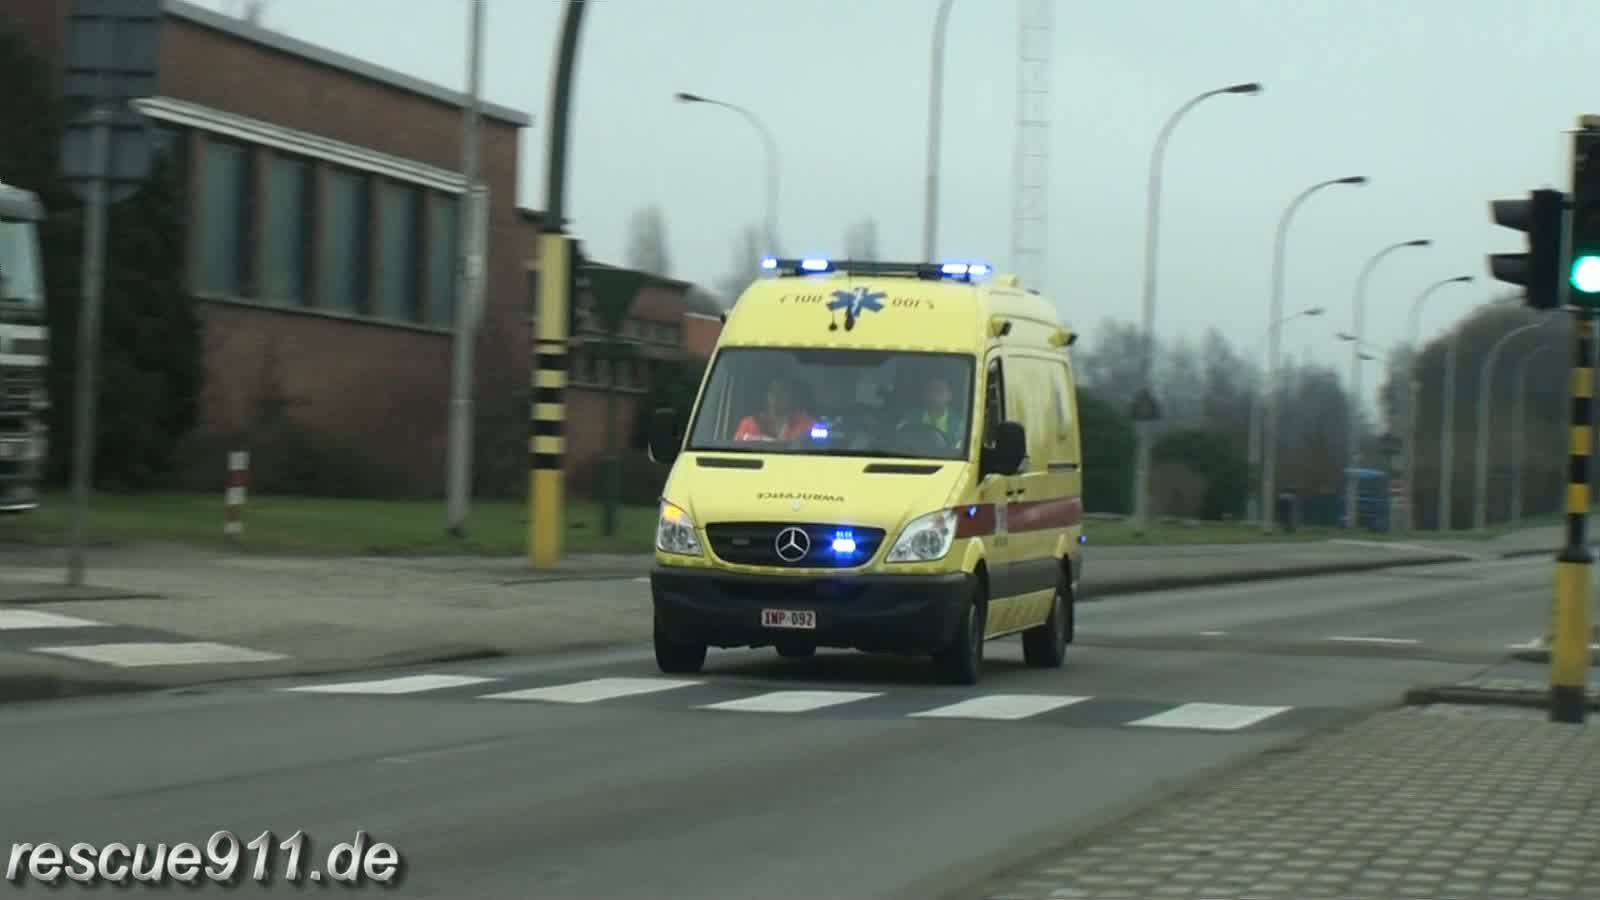 Ambulance Falck Ambuce ZNA Jan Palfijn (stream)